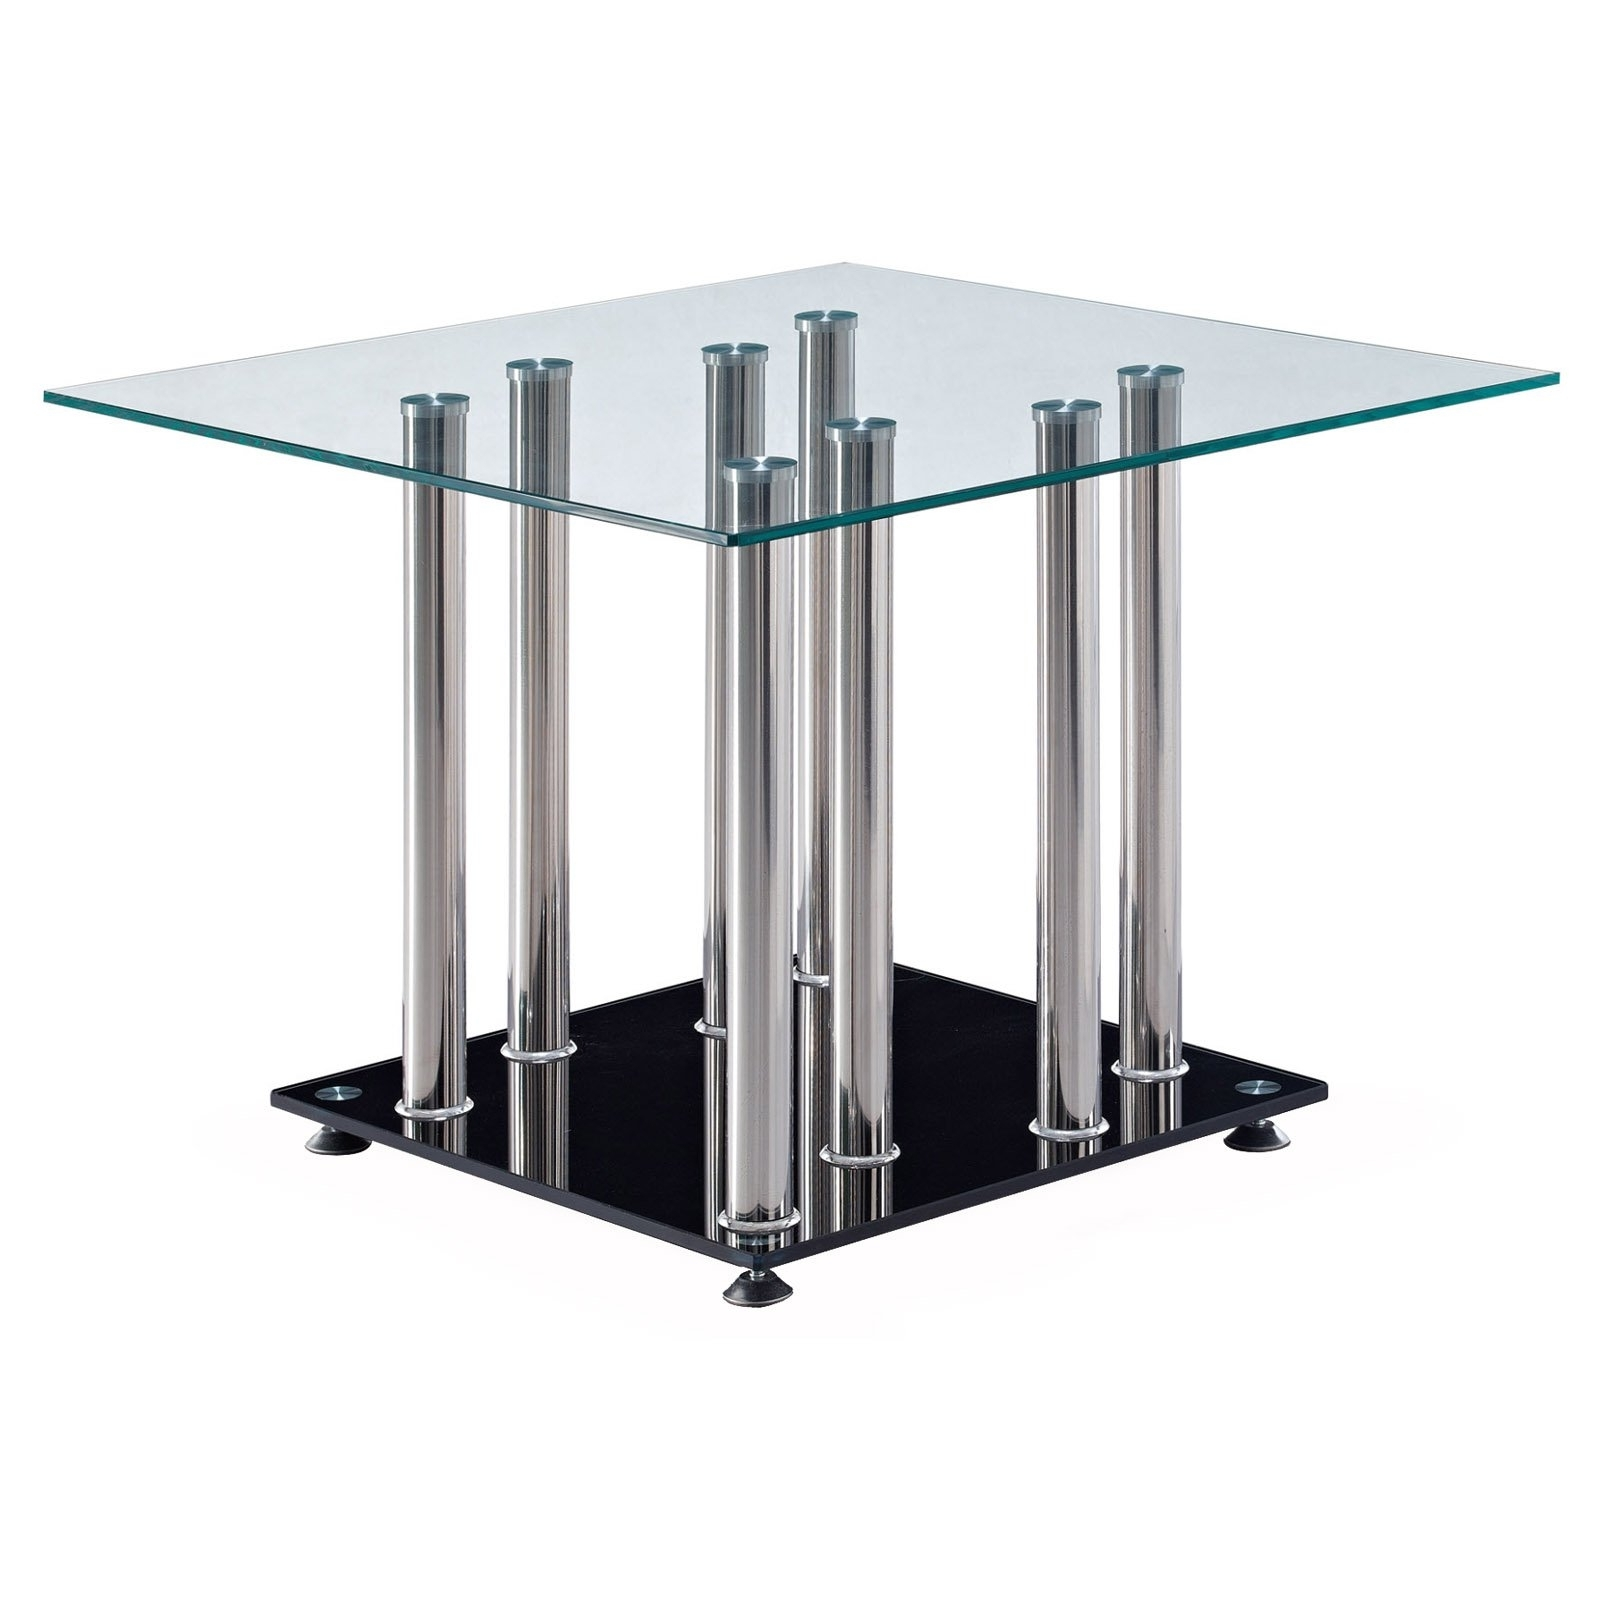 Fashionable 8 Stainless Steel Pipe Dining Table Legs With Square Glass Table Top Pertaining To Square Black Glass Dining Tables (View 5 of 25)